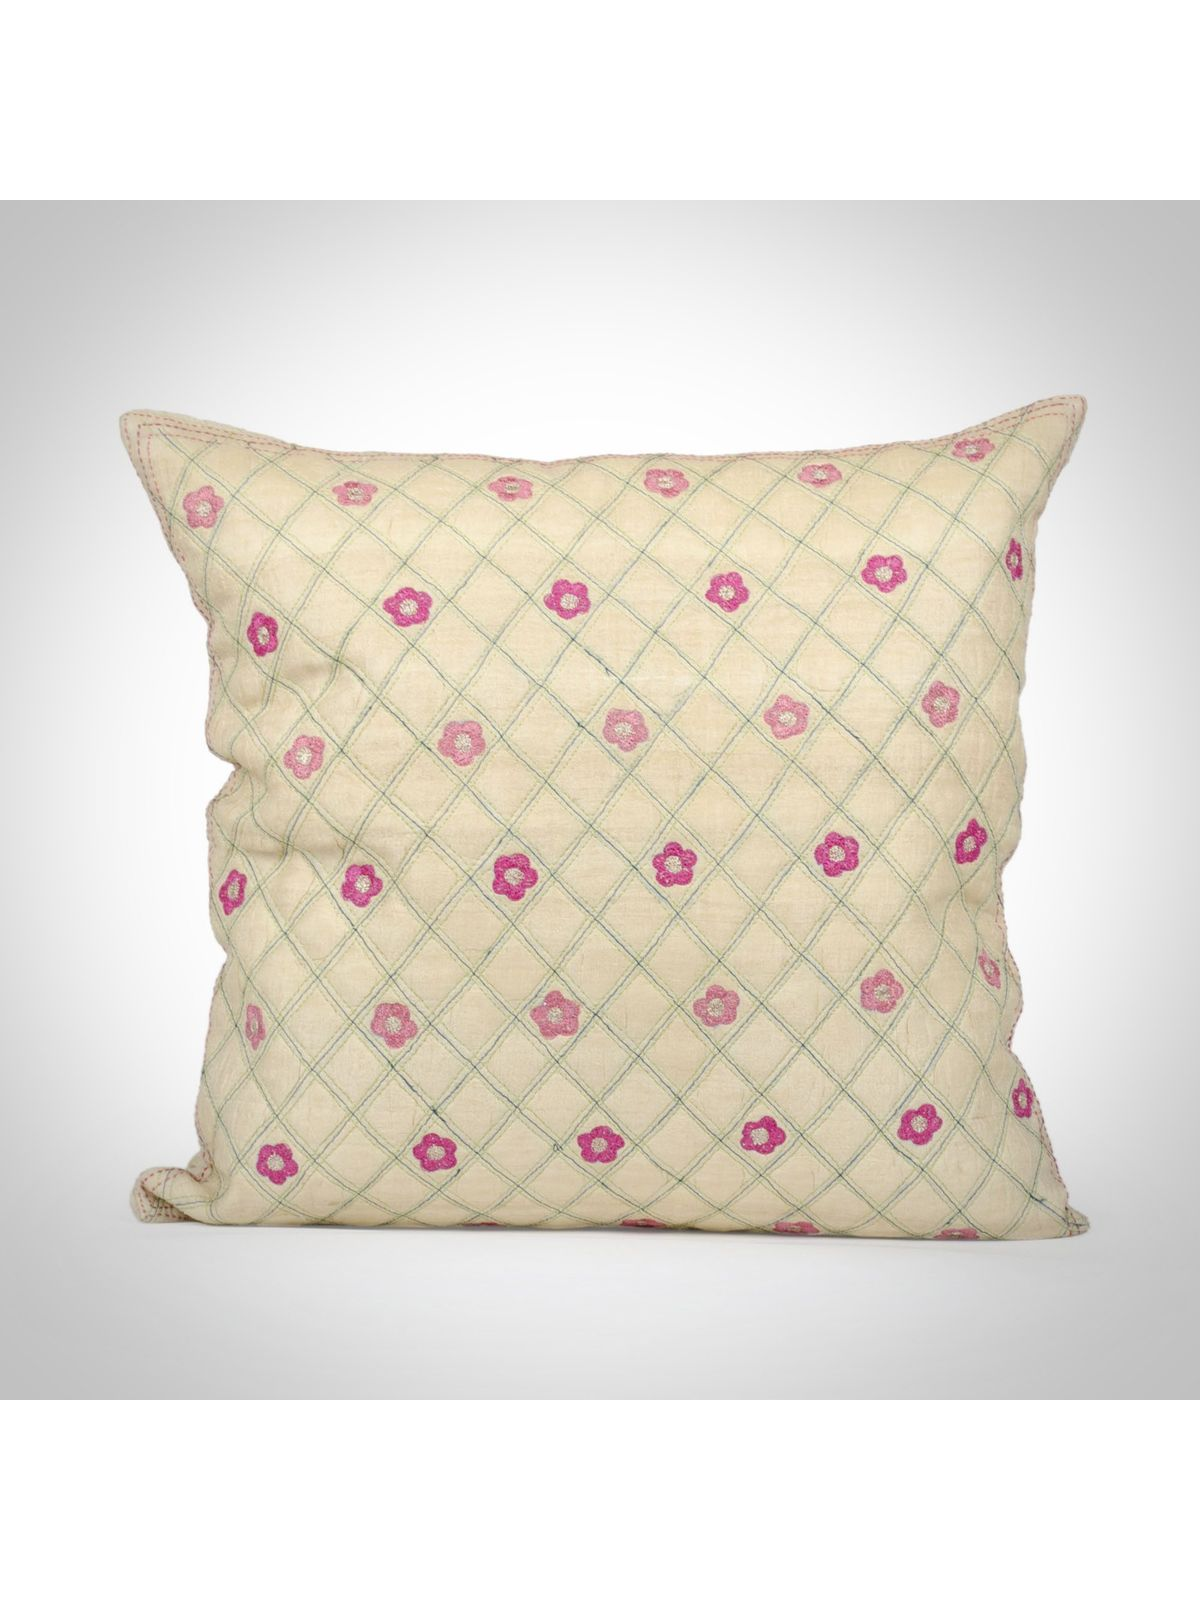 Tussar Silk Cushion Cover - 16x16Inch